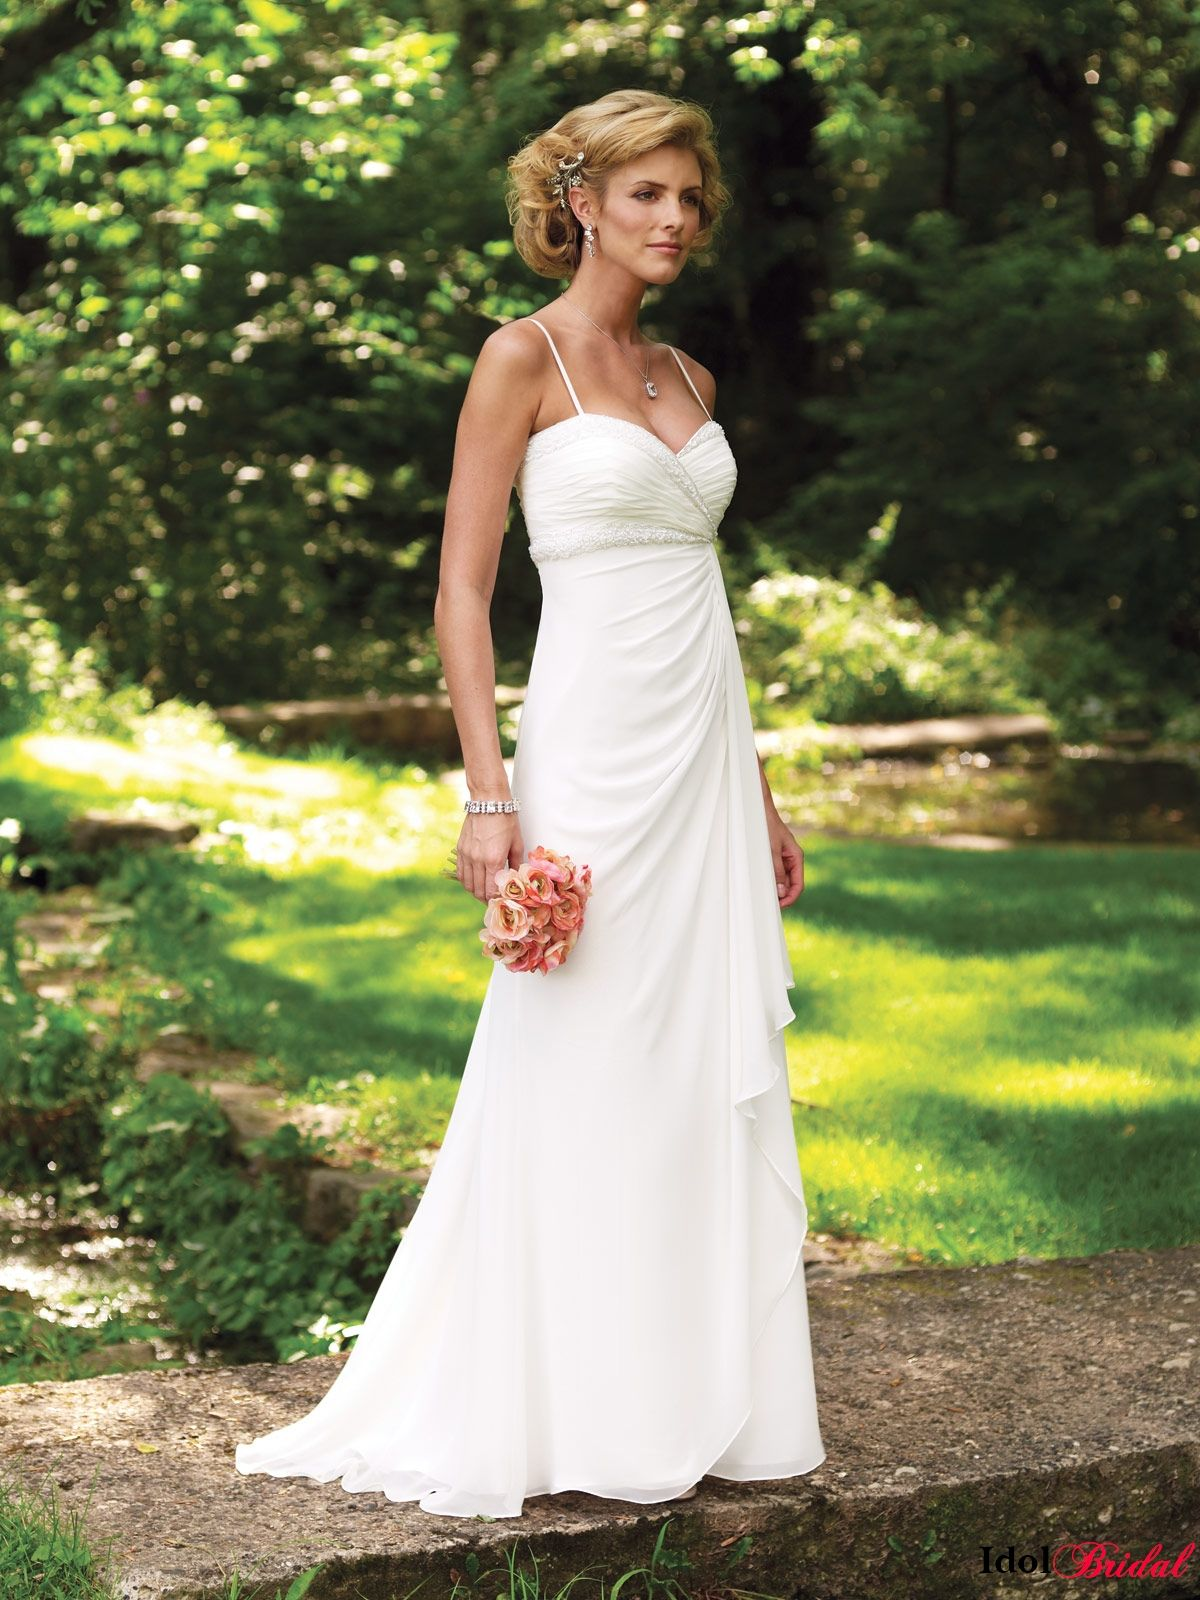 Simple Bridesmaid Dresses for Summer